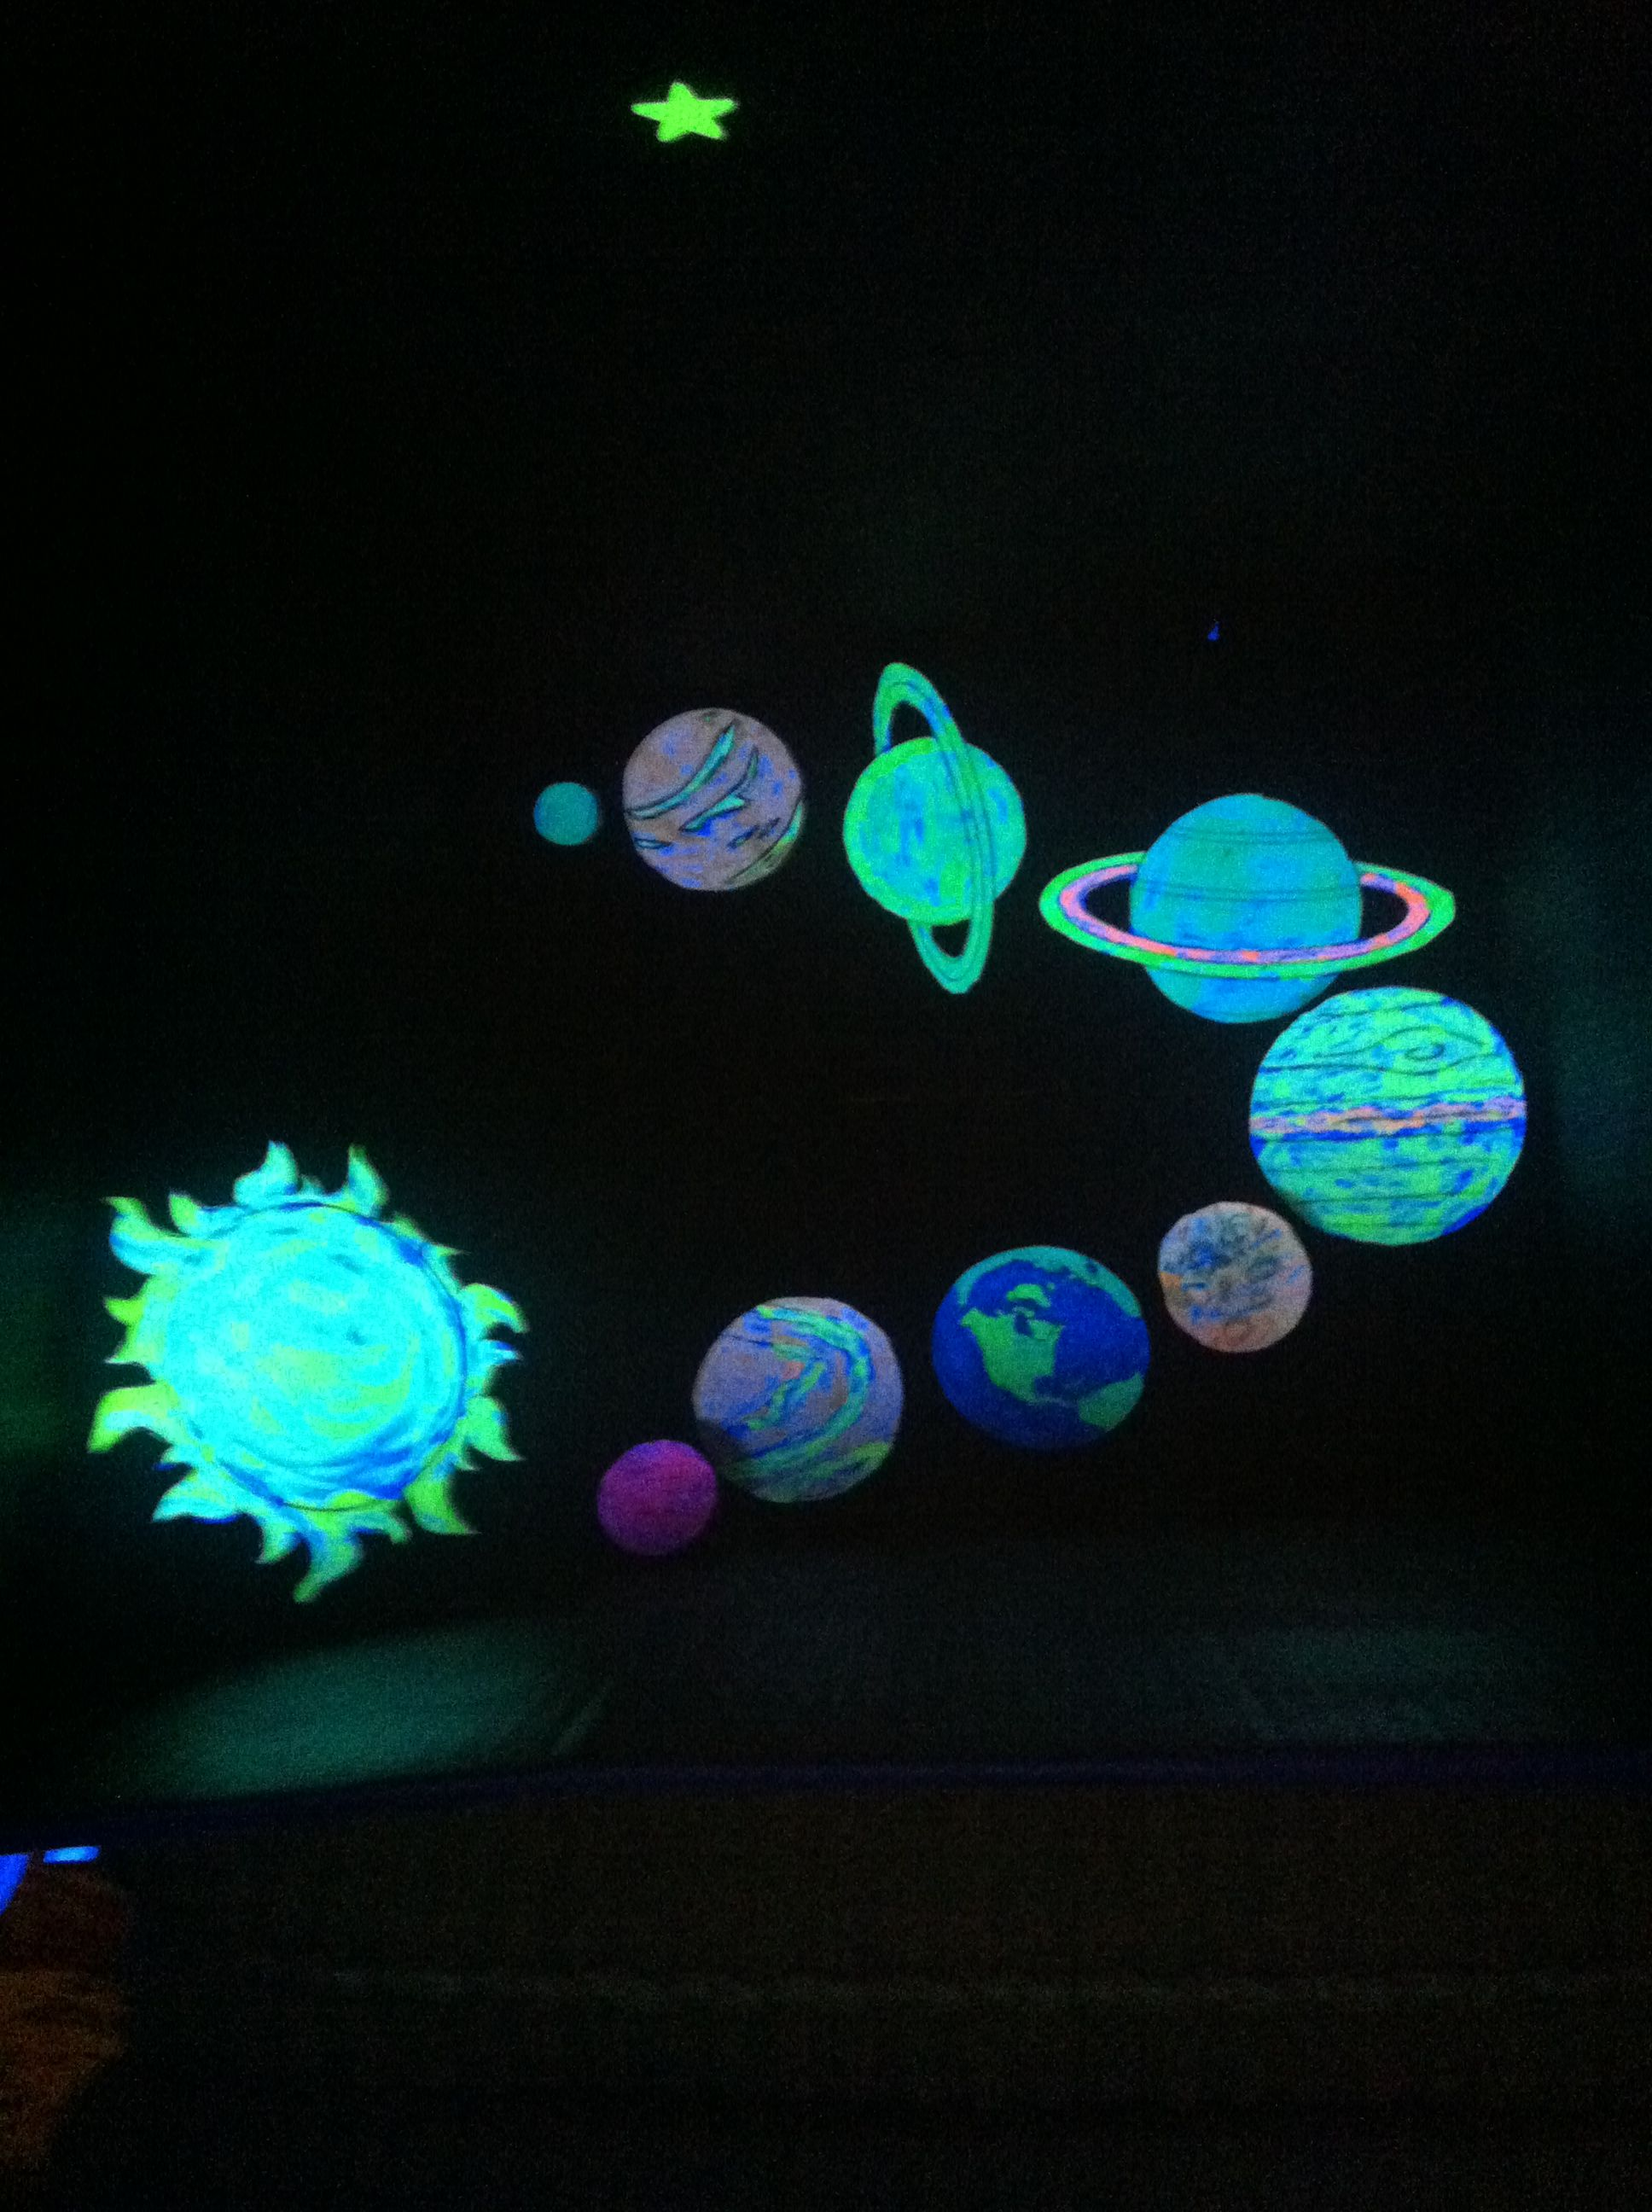 Glowing Solar System From Kmart (page 2) - Pics about space